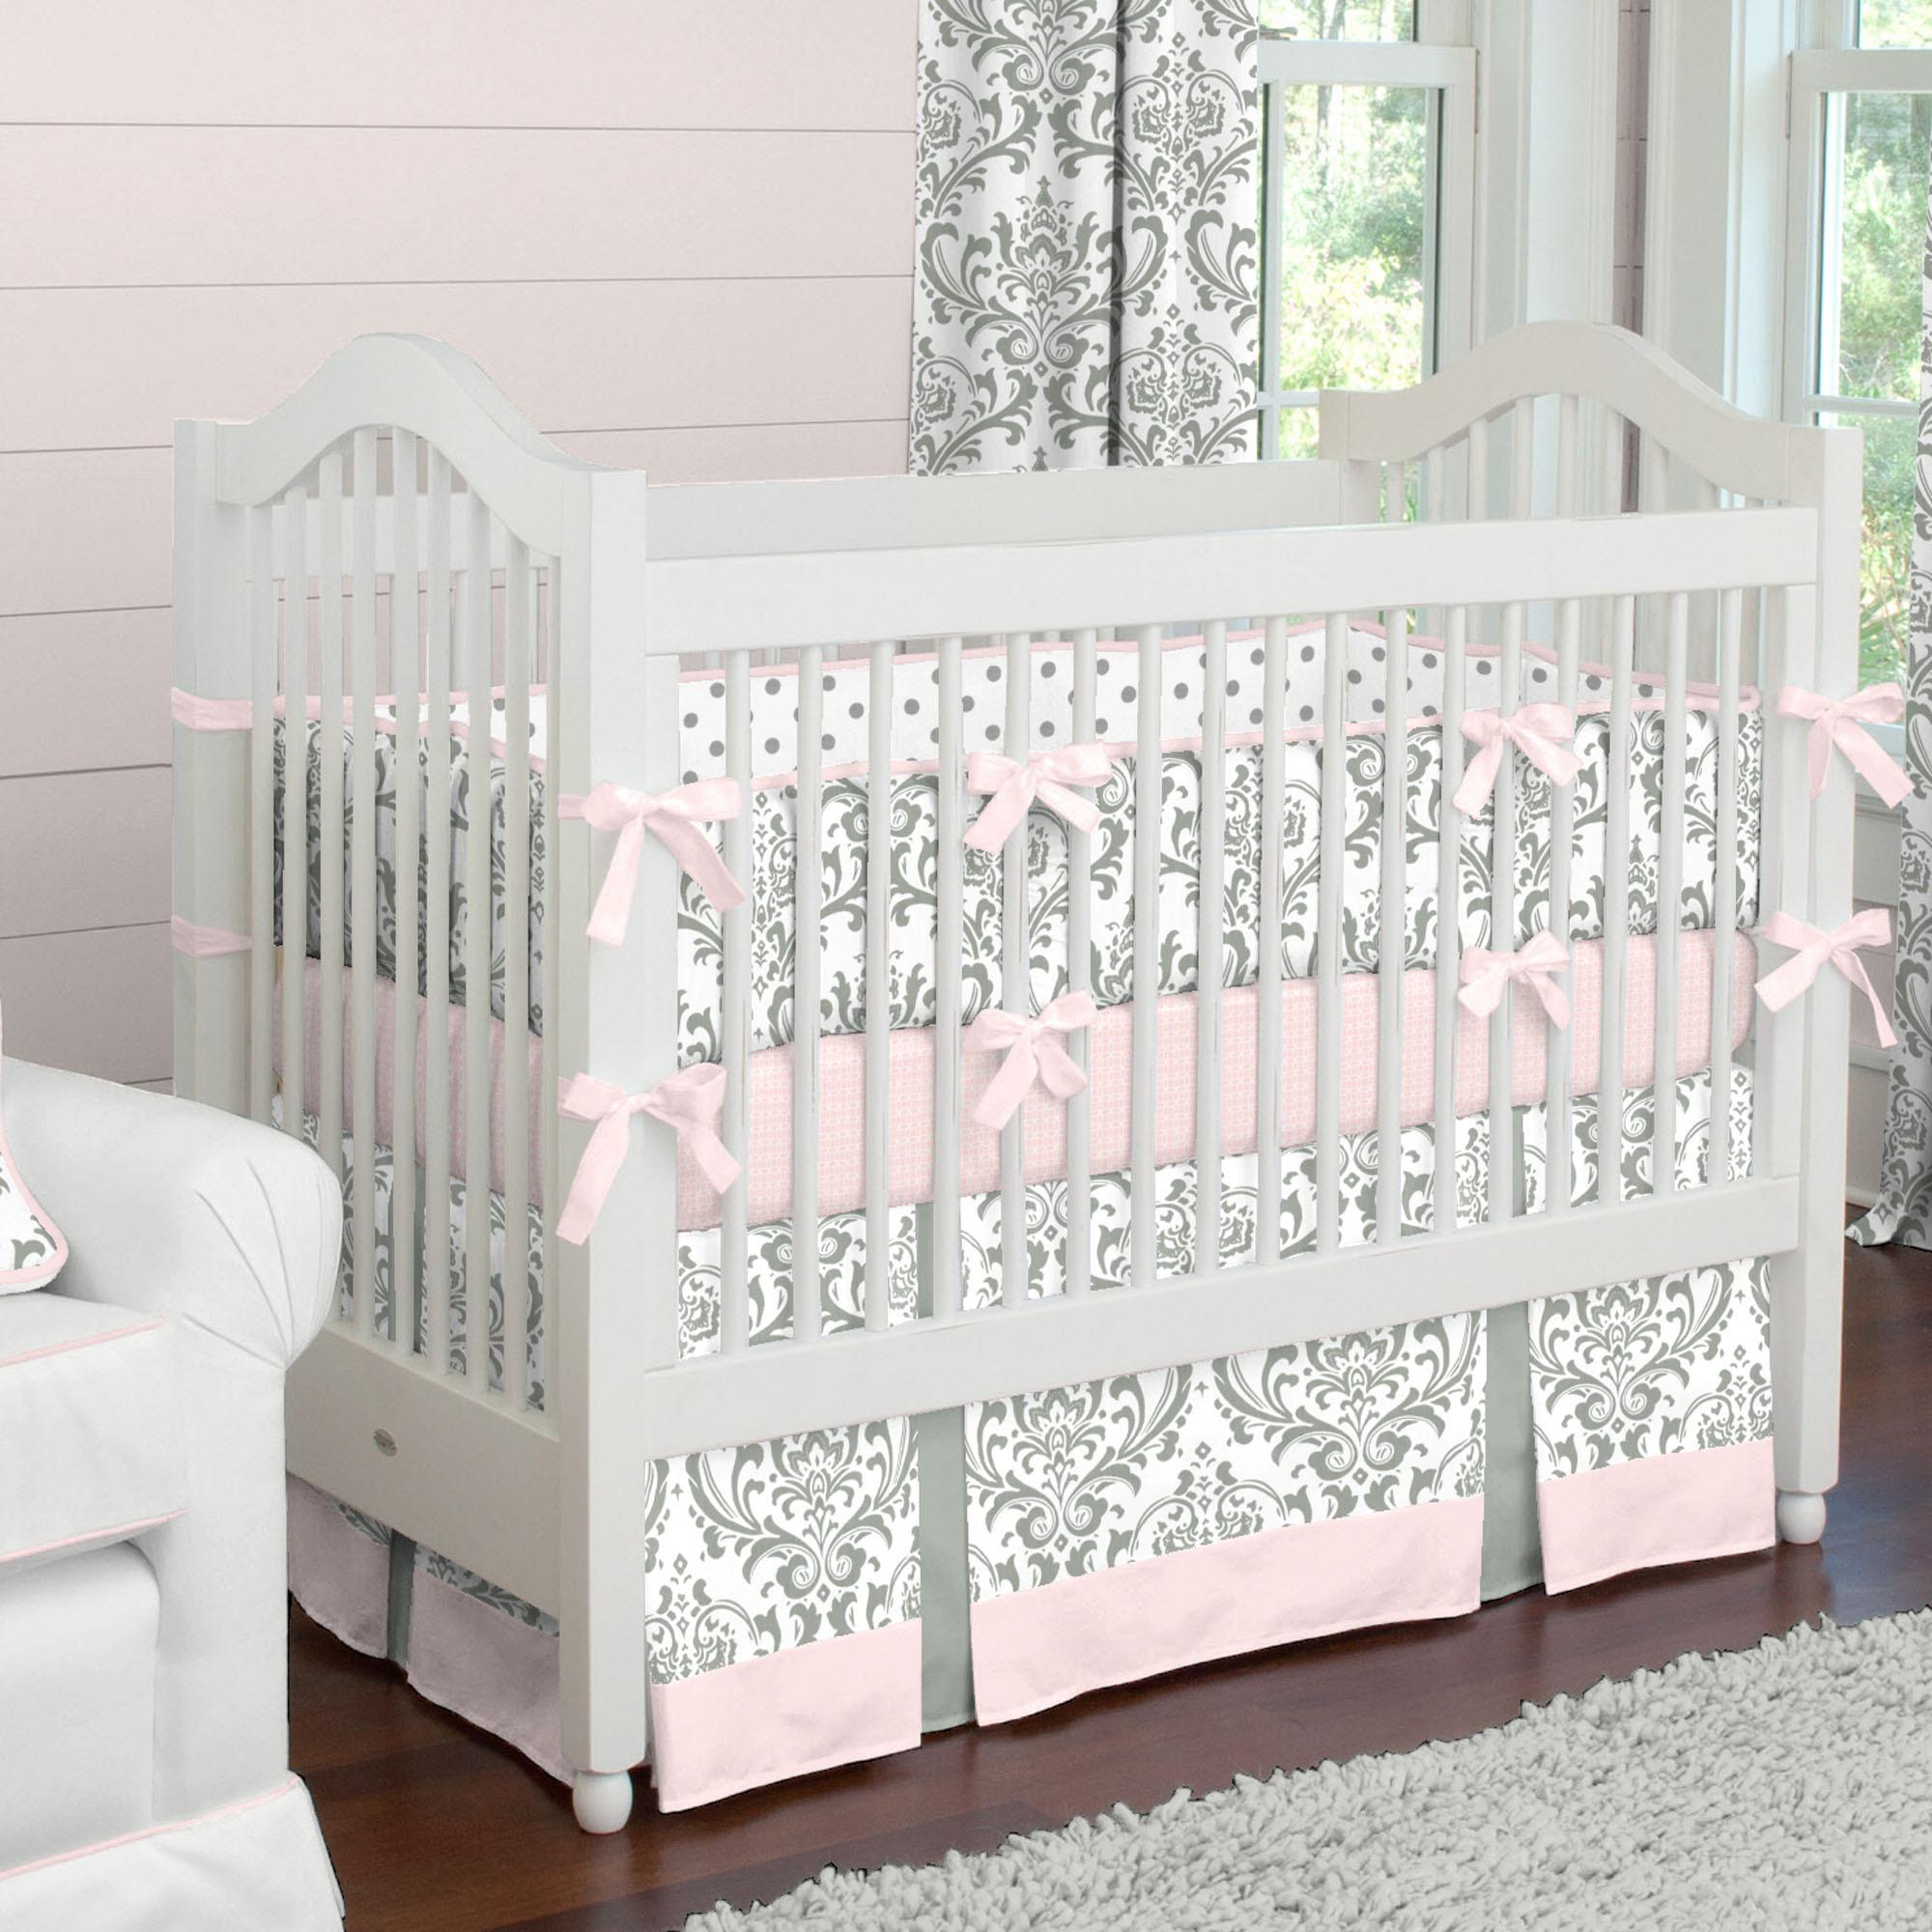 baby bedding pink and gray traditions baby crib bedding UHMKUBJ